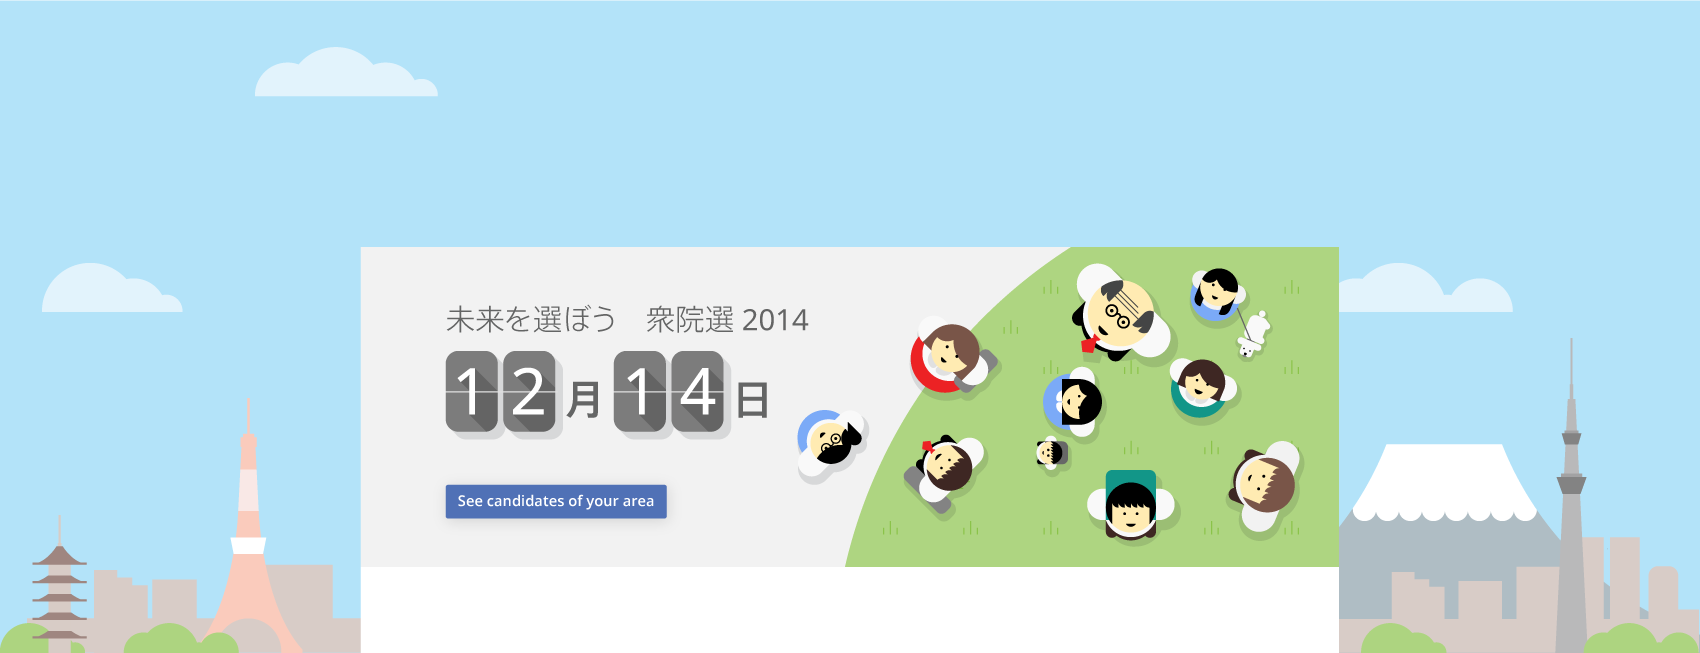 Google Japan 2014 Election Illustrations